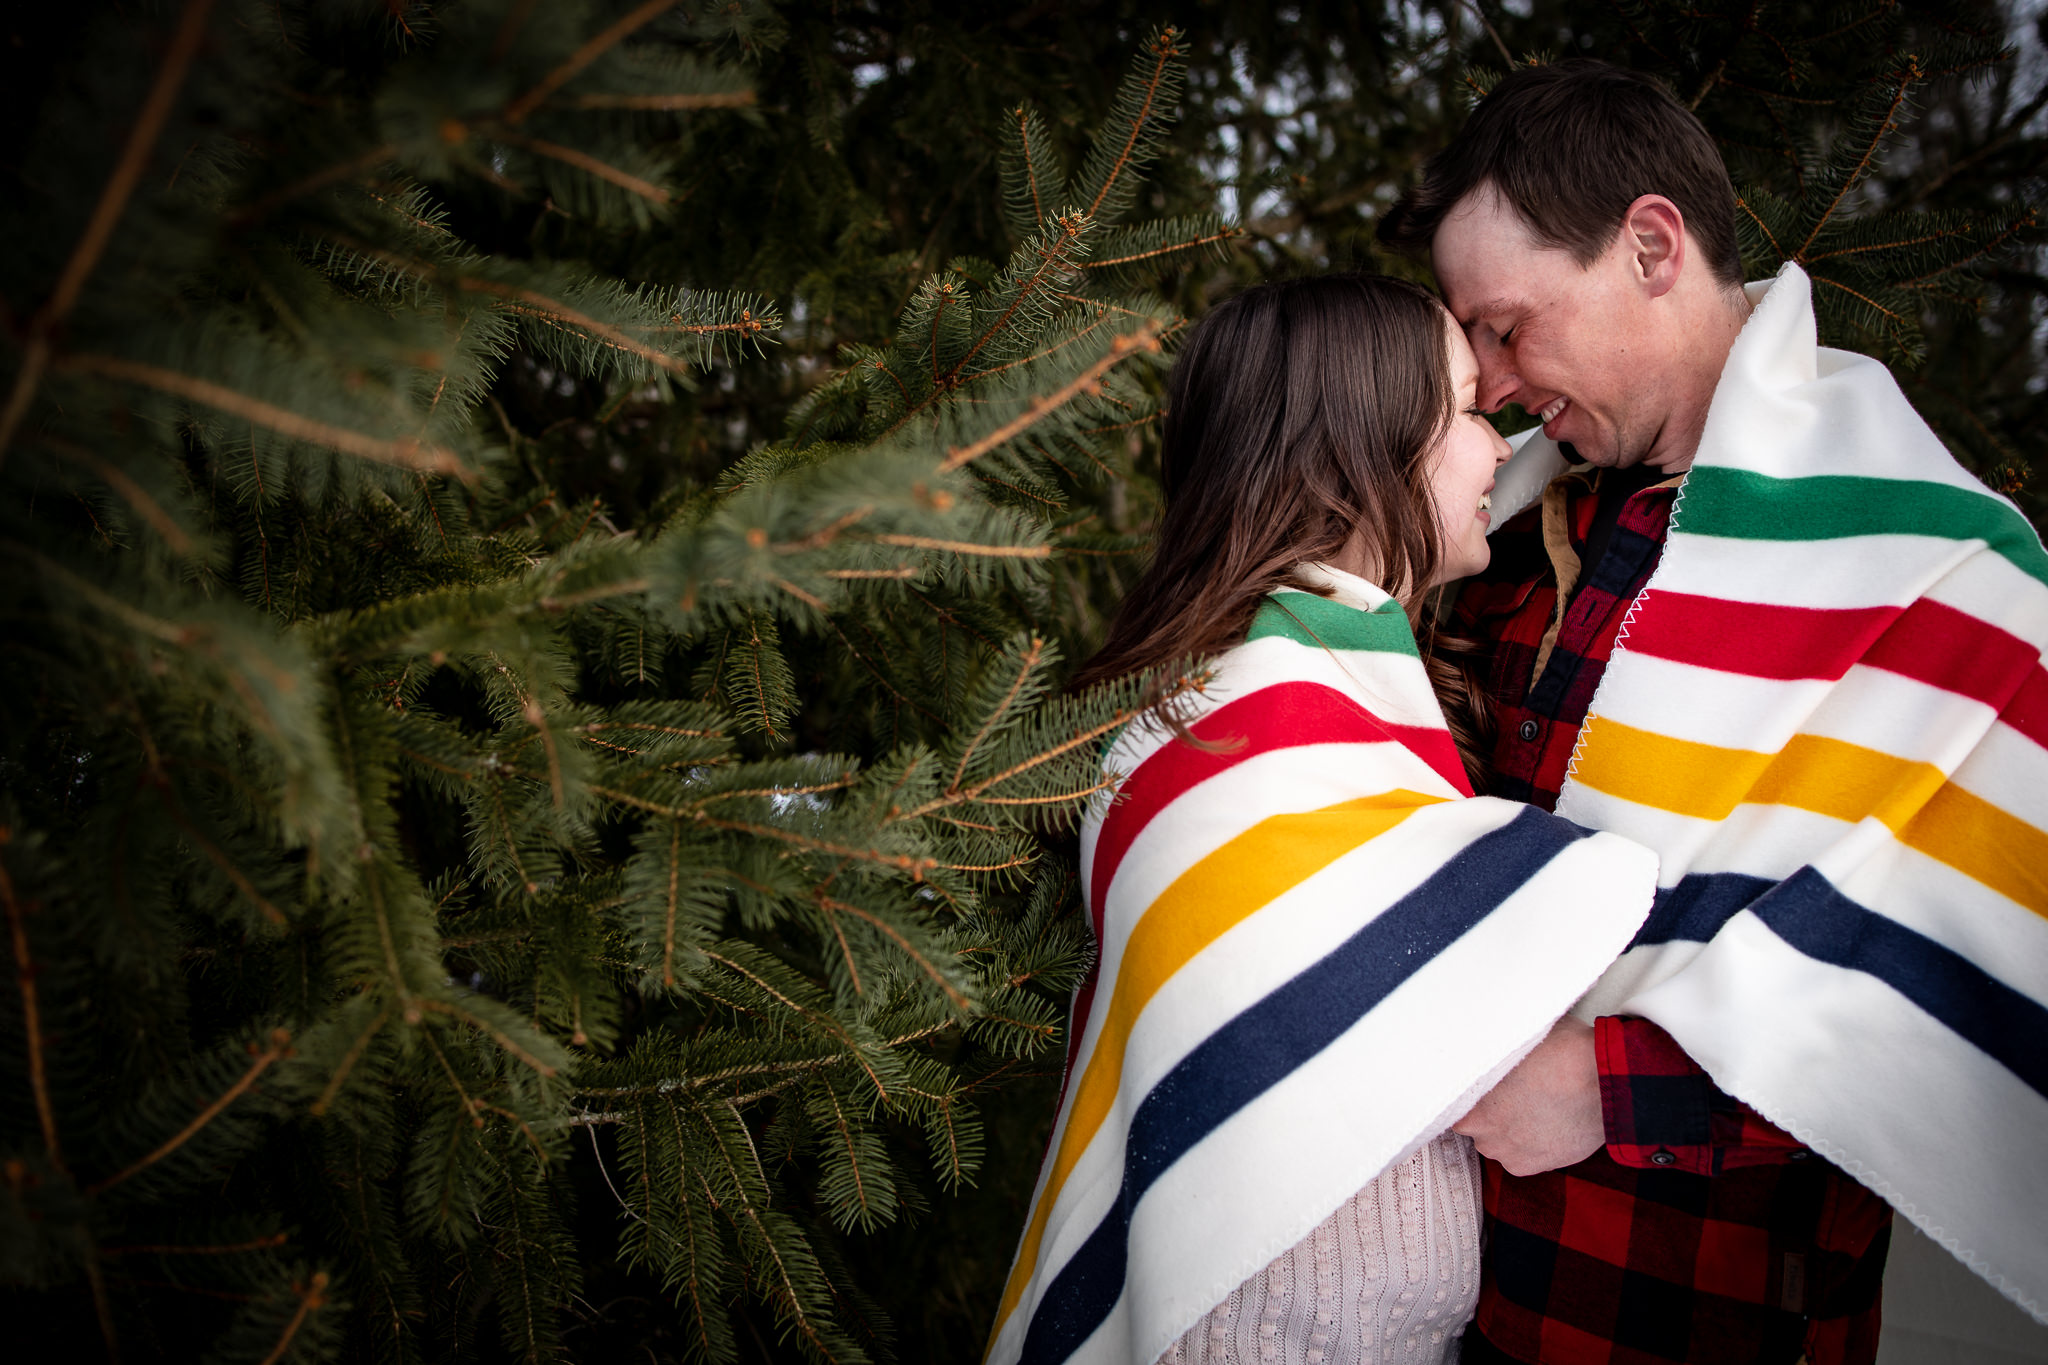 ice-skating-hockey-engagement-photos-27.jpg